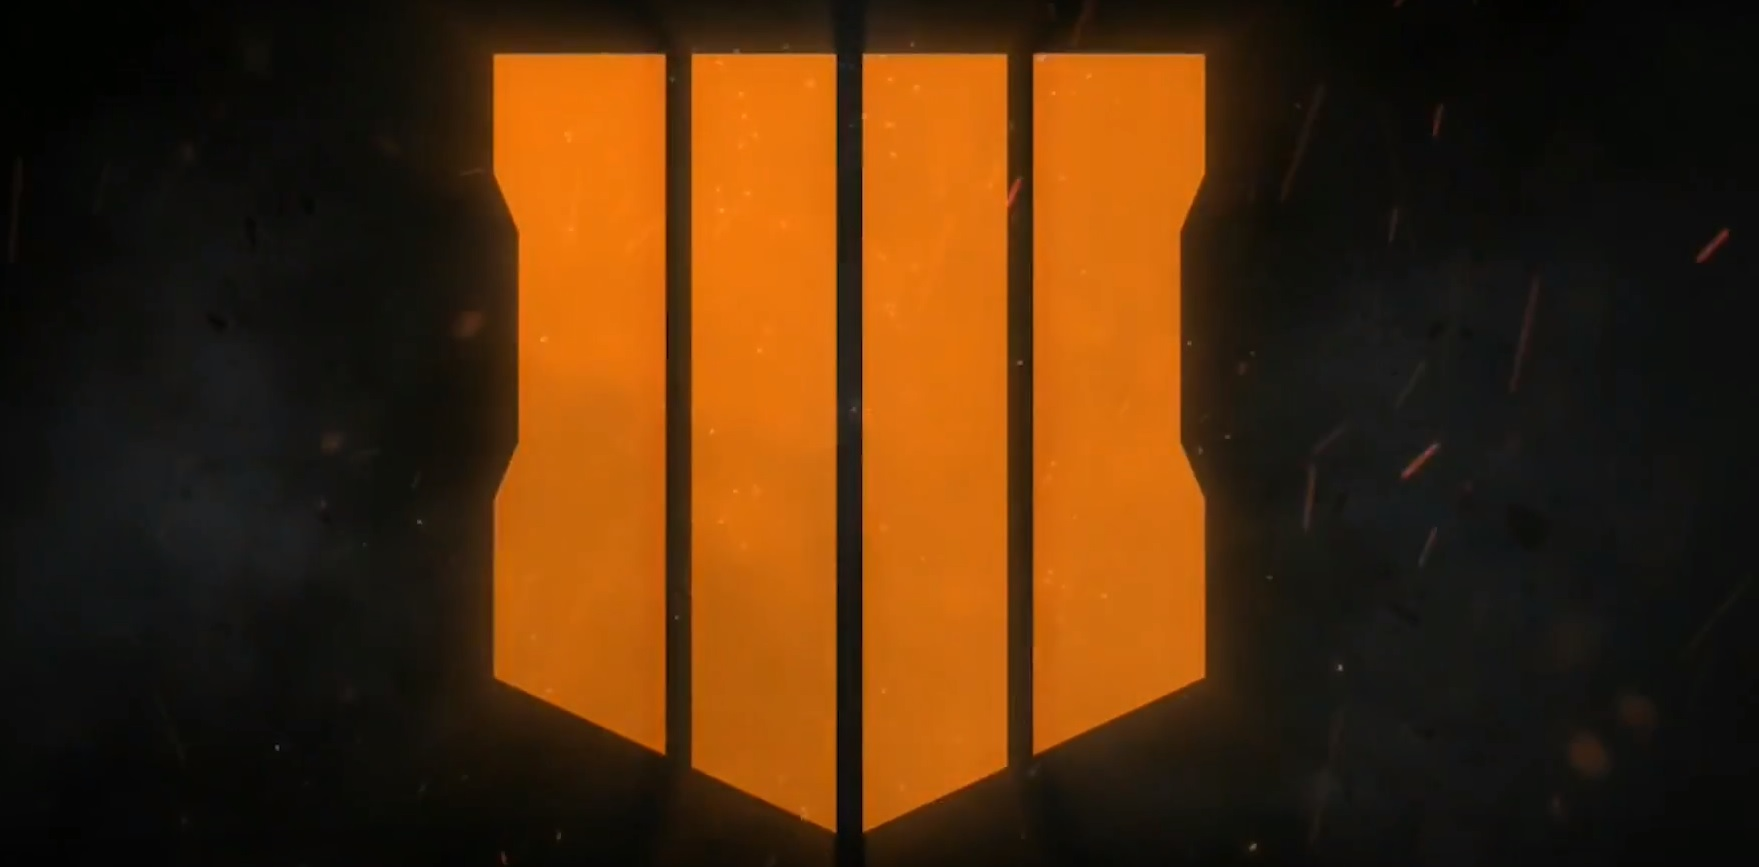 Megj 246 Tt A Call Of Duty Black Ops 4 Első Kedvcsin 225 L 243 Ja